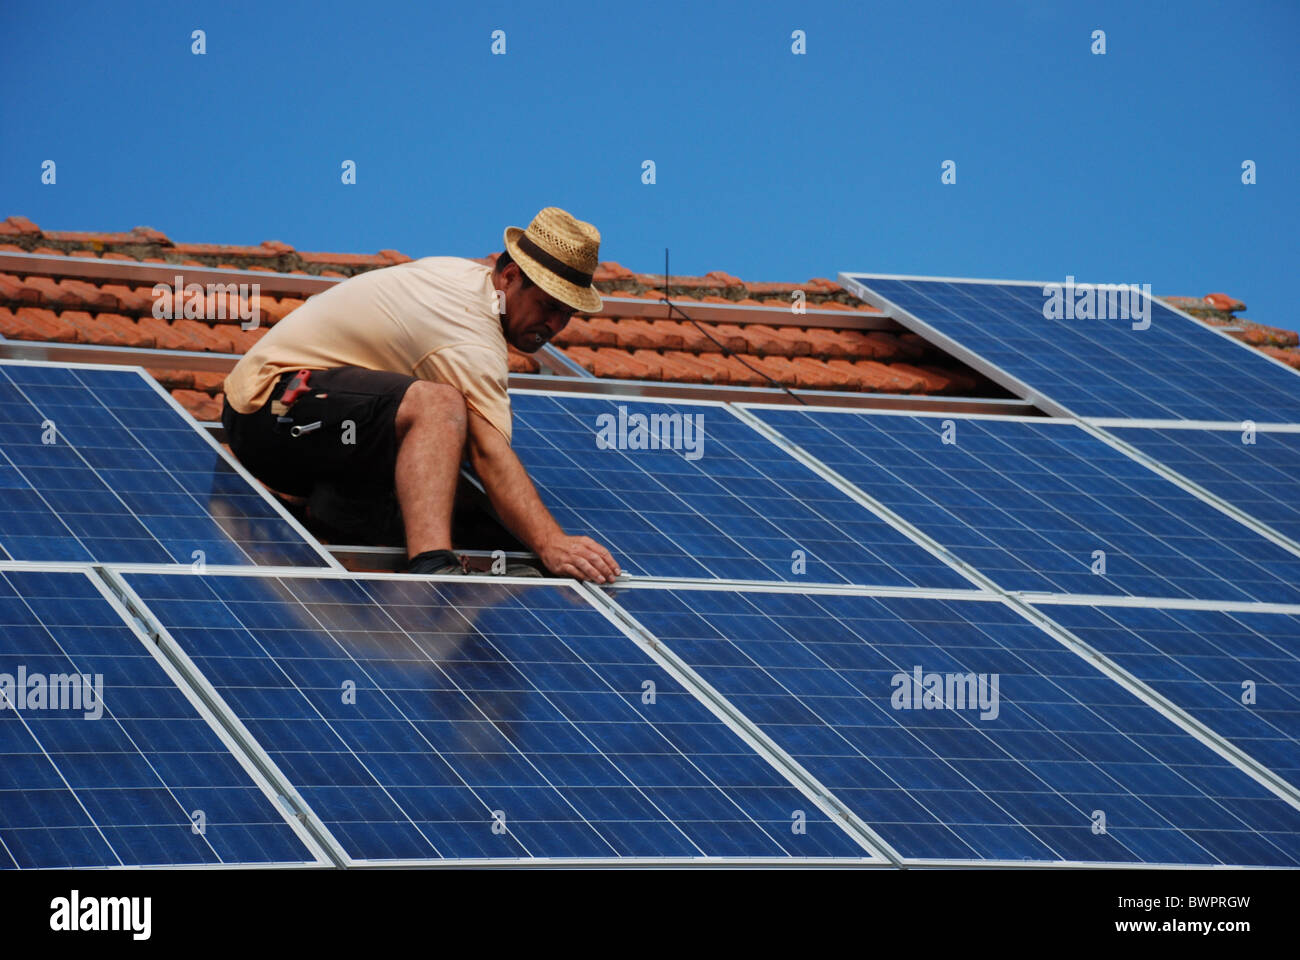 Installation of a solar plant - Stock Image